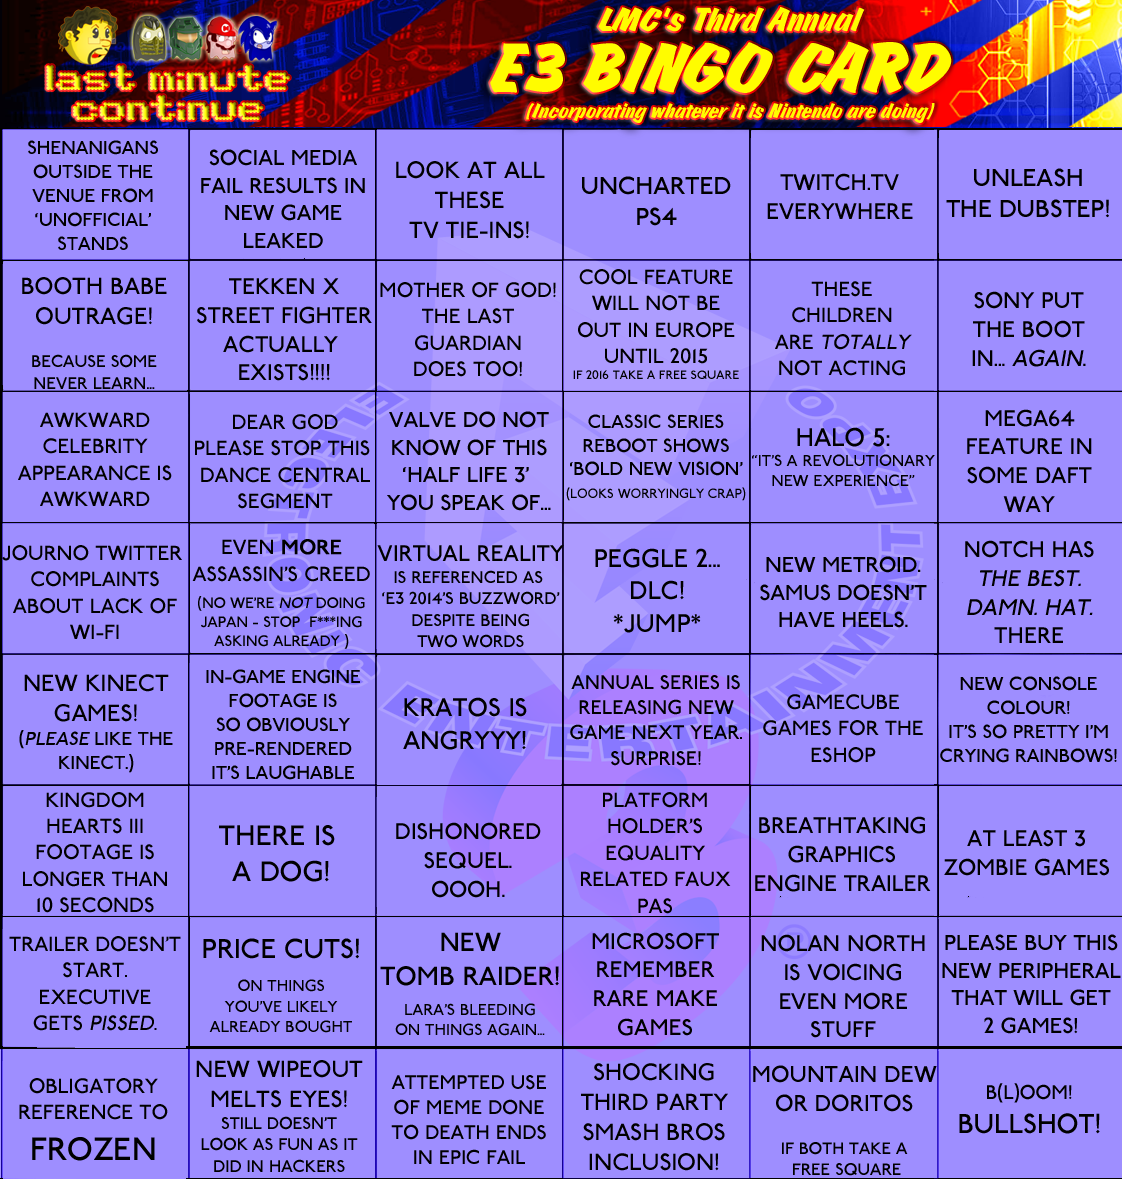 Last Minute Continue's E3 Bingo Card 2014